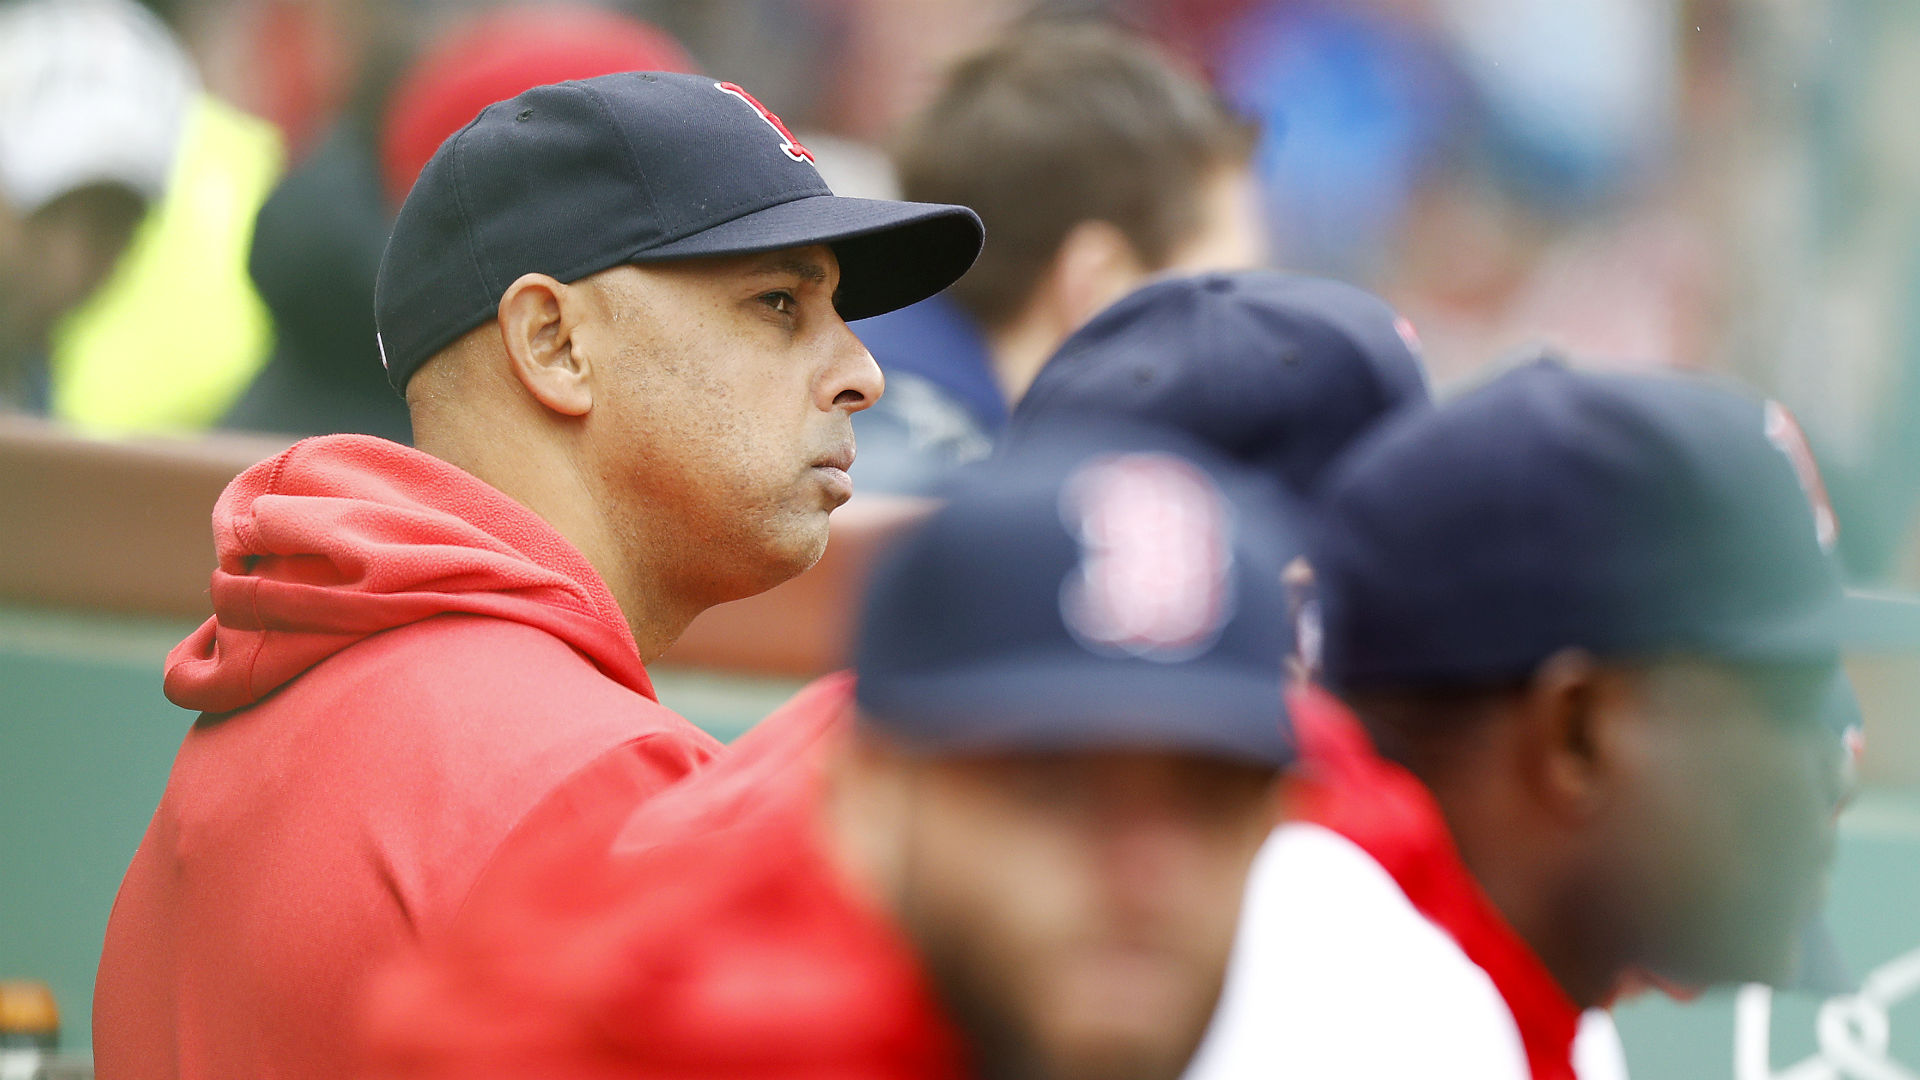 Alex Cora announces he won't visit White House with Red Sox: 'I don't feel comfortable'